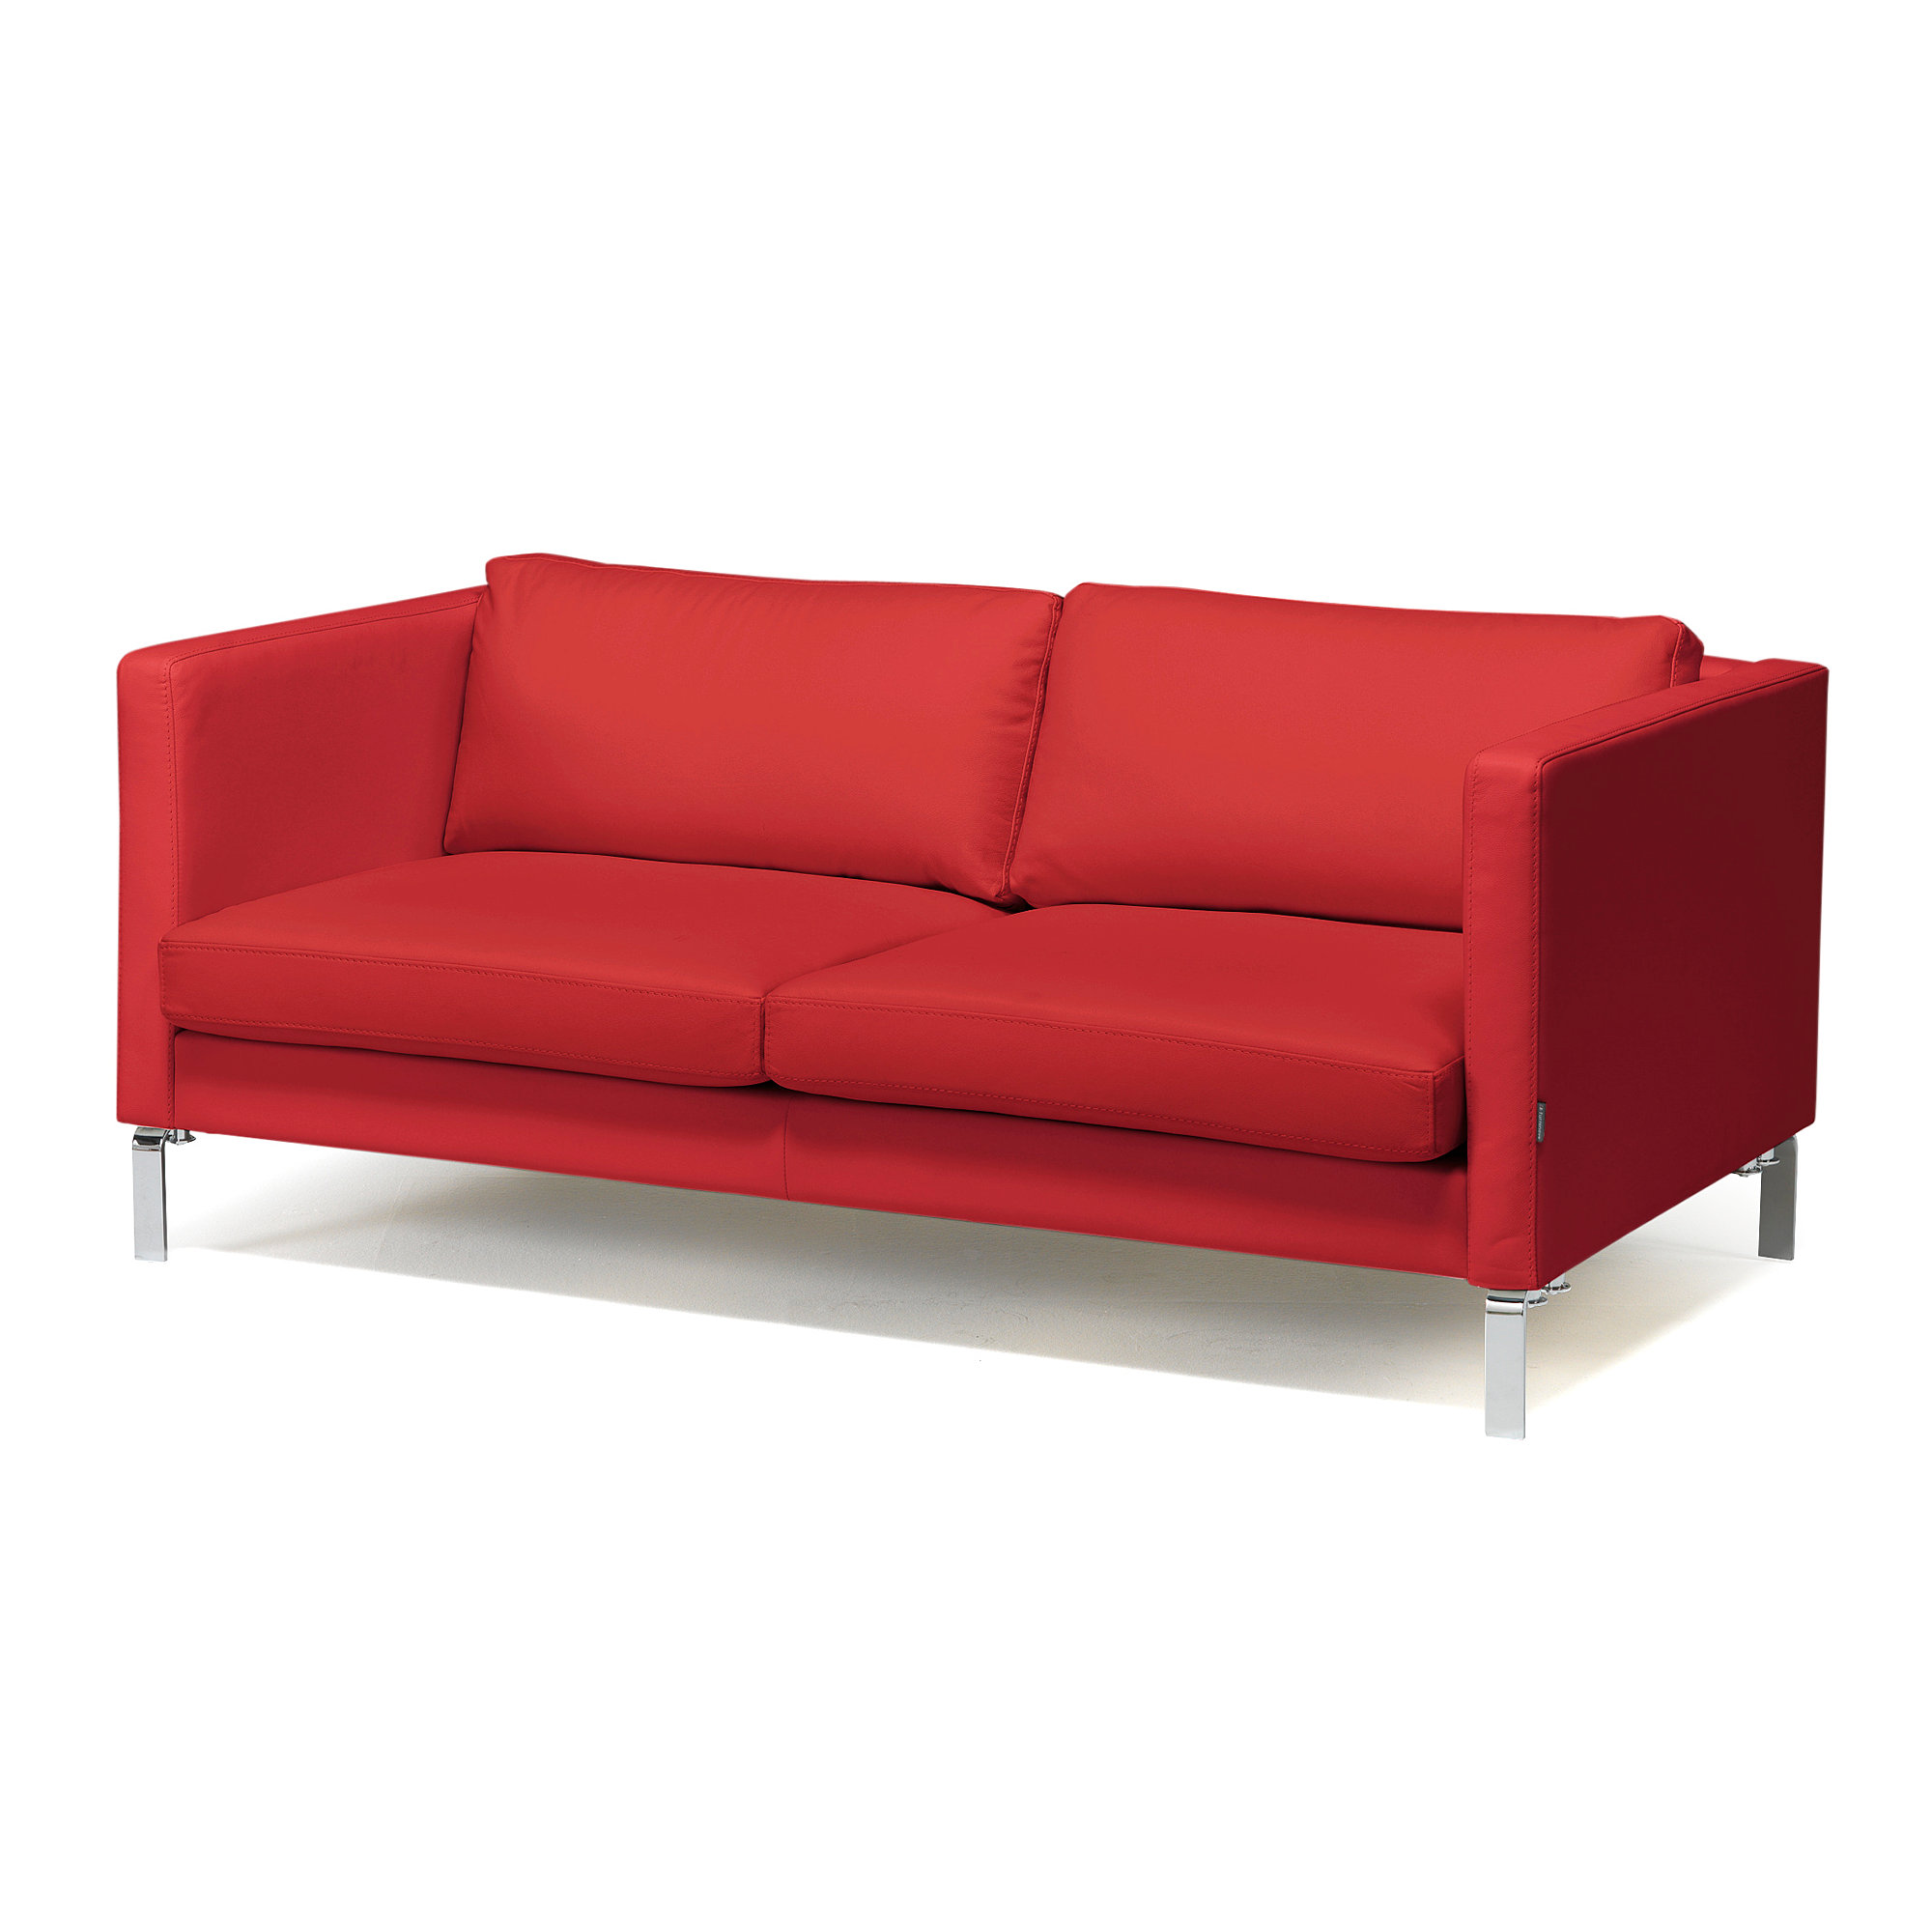 sofa package deals uk corinthian benton waiting room 3 seater neo leather red aj products